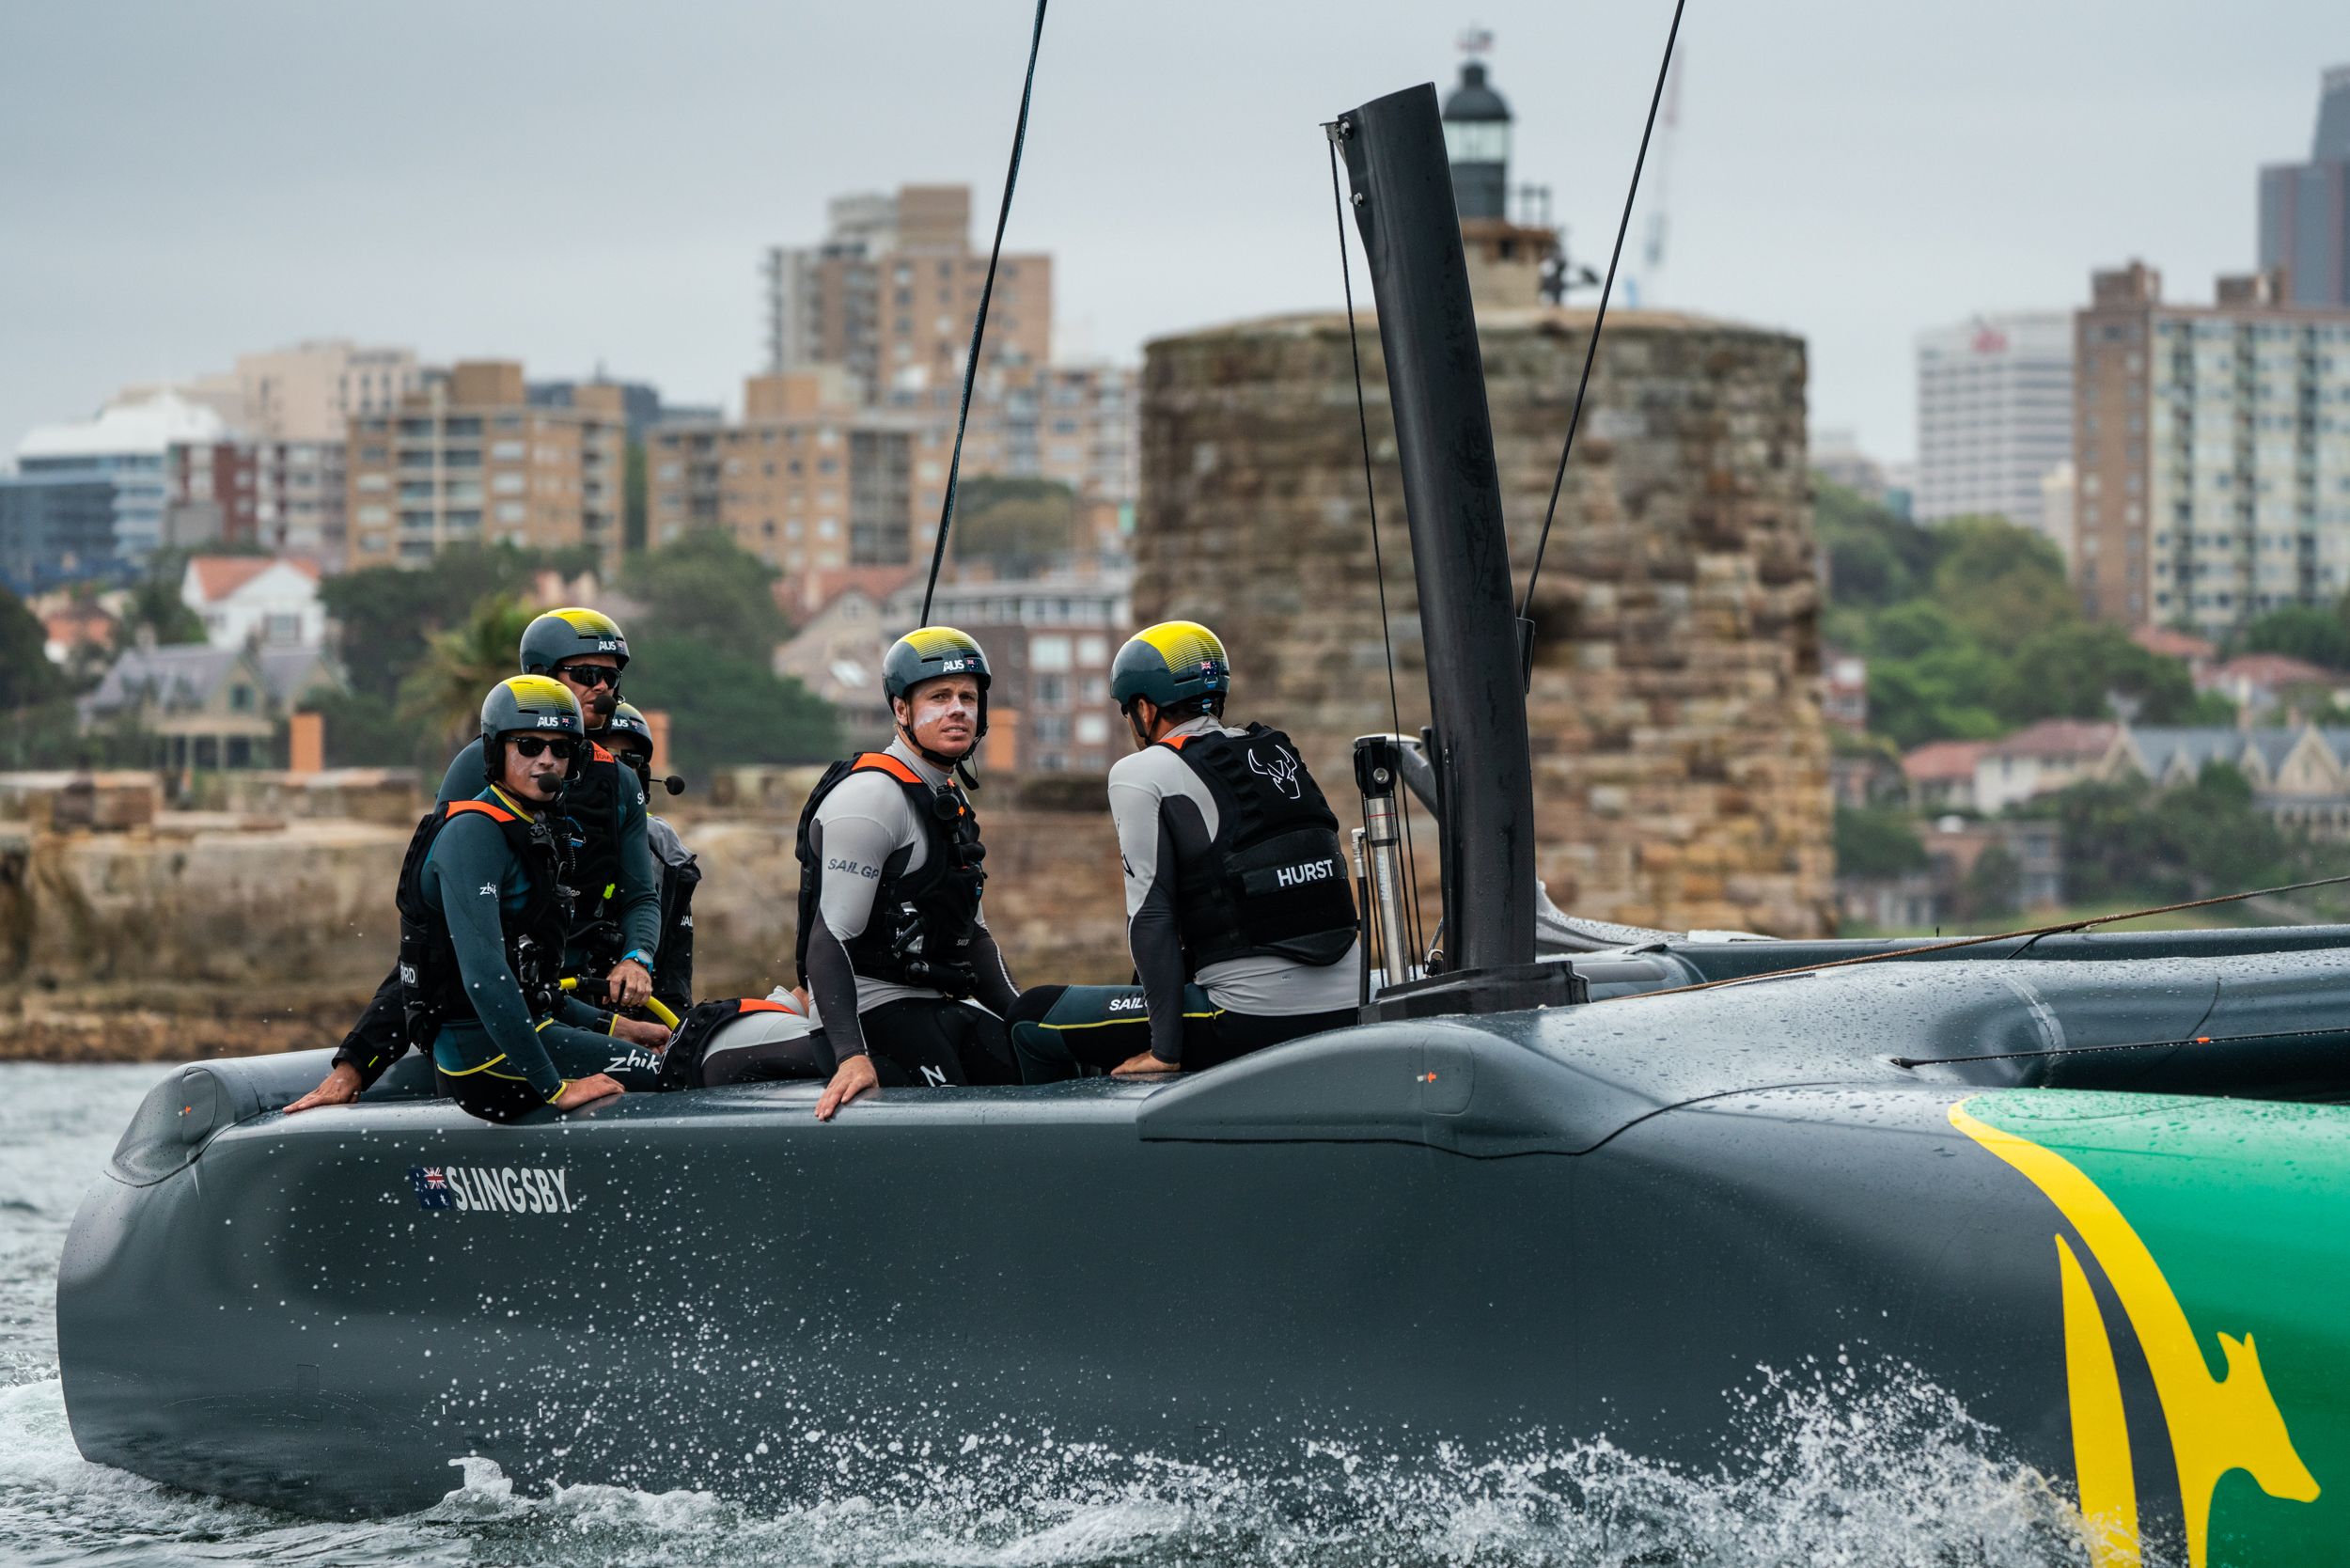 Aussie crew headed by Tom Slingsby on Sydney Harbour - Beau Outteridge pic